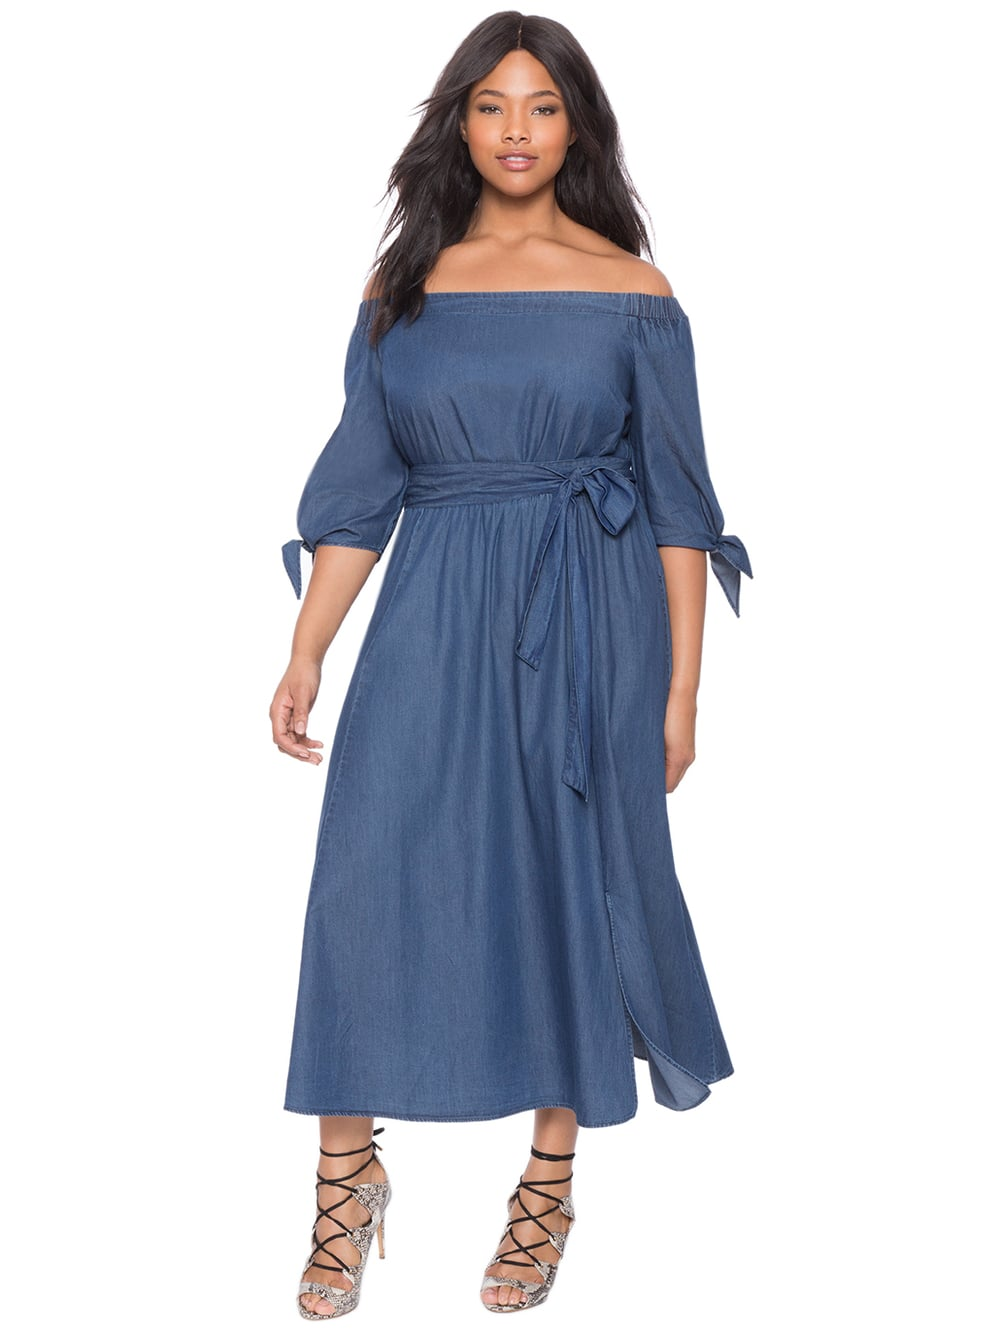 All you Eloquii lovers!  They are having a SALE that's already running.  40% Off All Original Ticket Dresses & TopsUsing the CODE: GLAM     plus up to 70% off Last Chance Sale